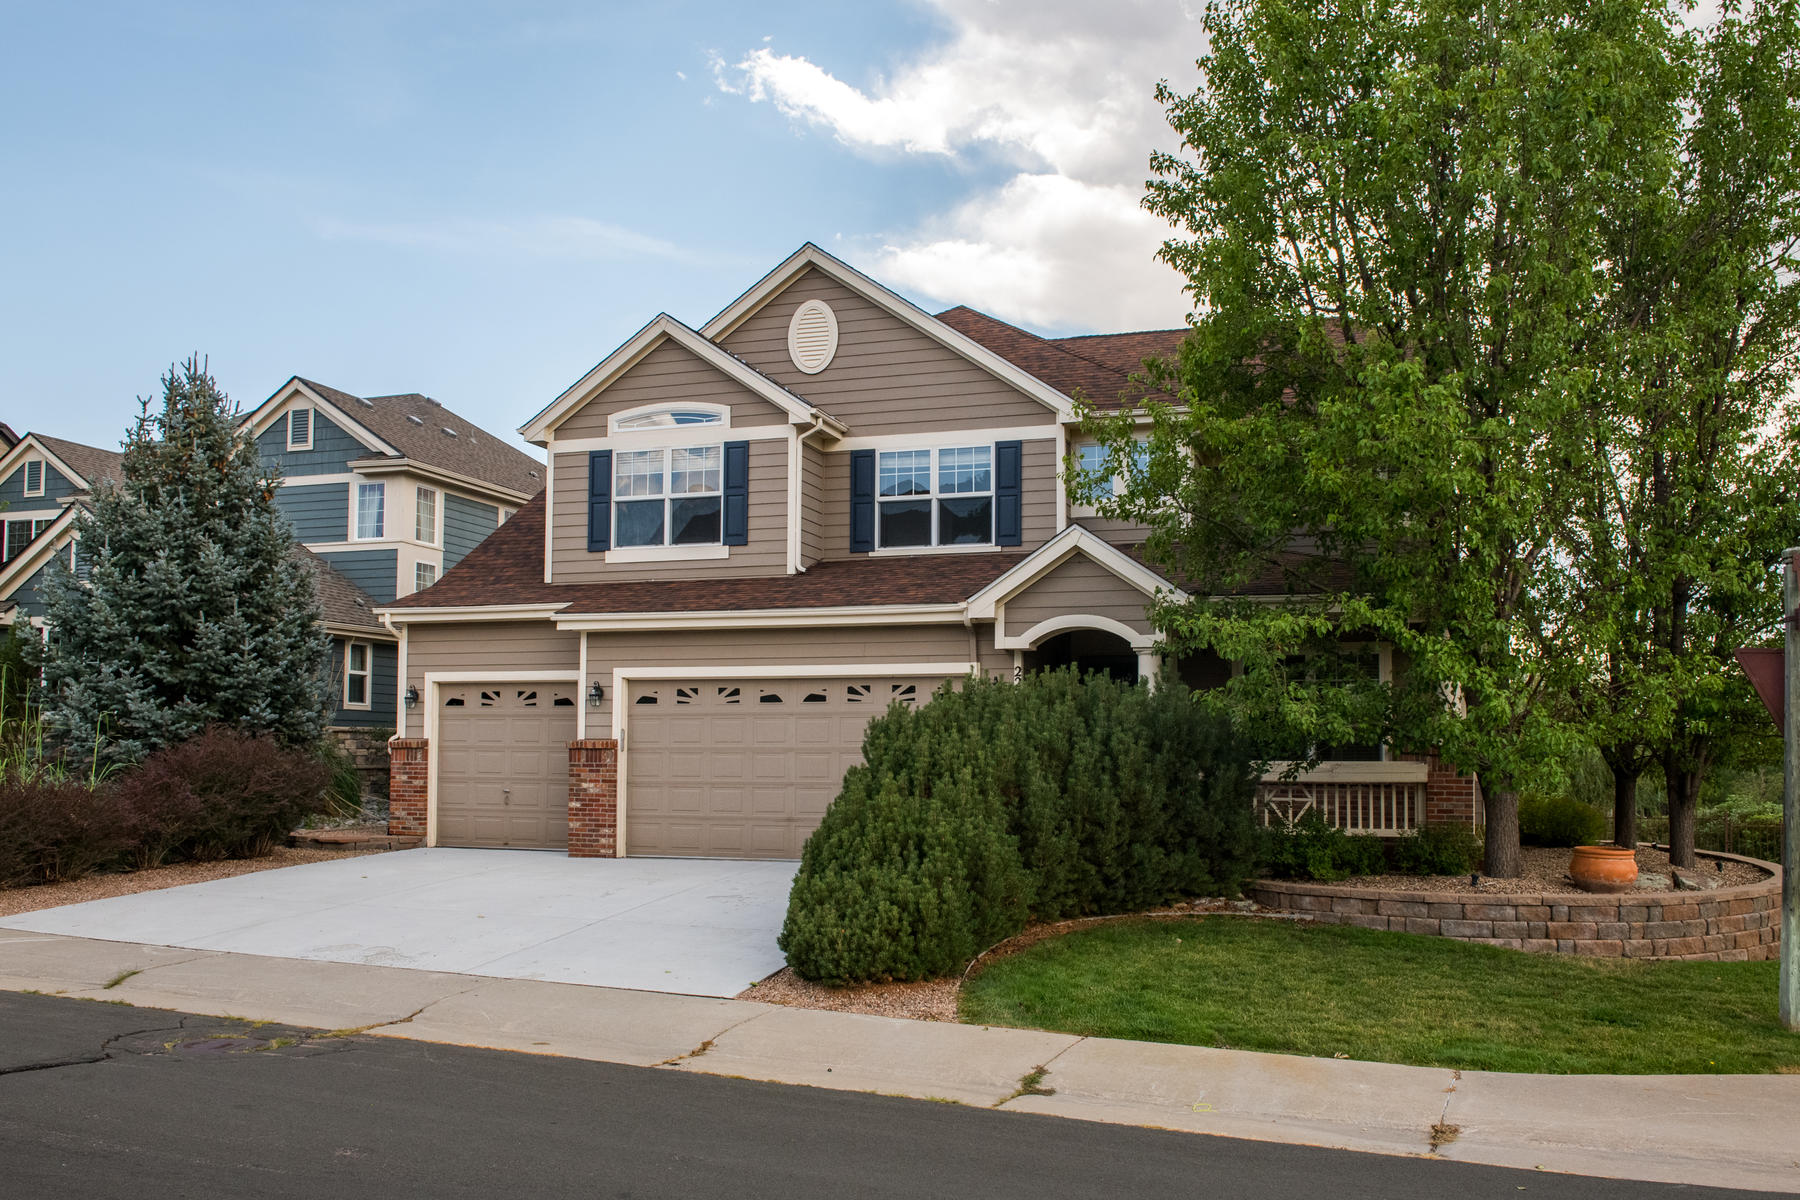 Single Family Homes for Sale at Amazing location, Cherry Creek Schools and quick access to Southlands mall 22756 E Calhoun Pl Aurora, Colorado 80016 United States